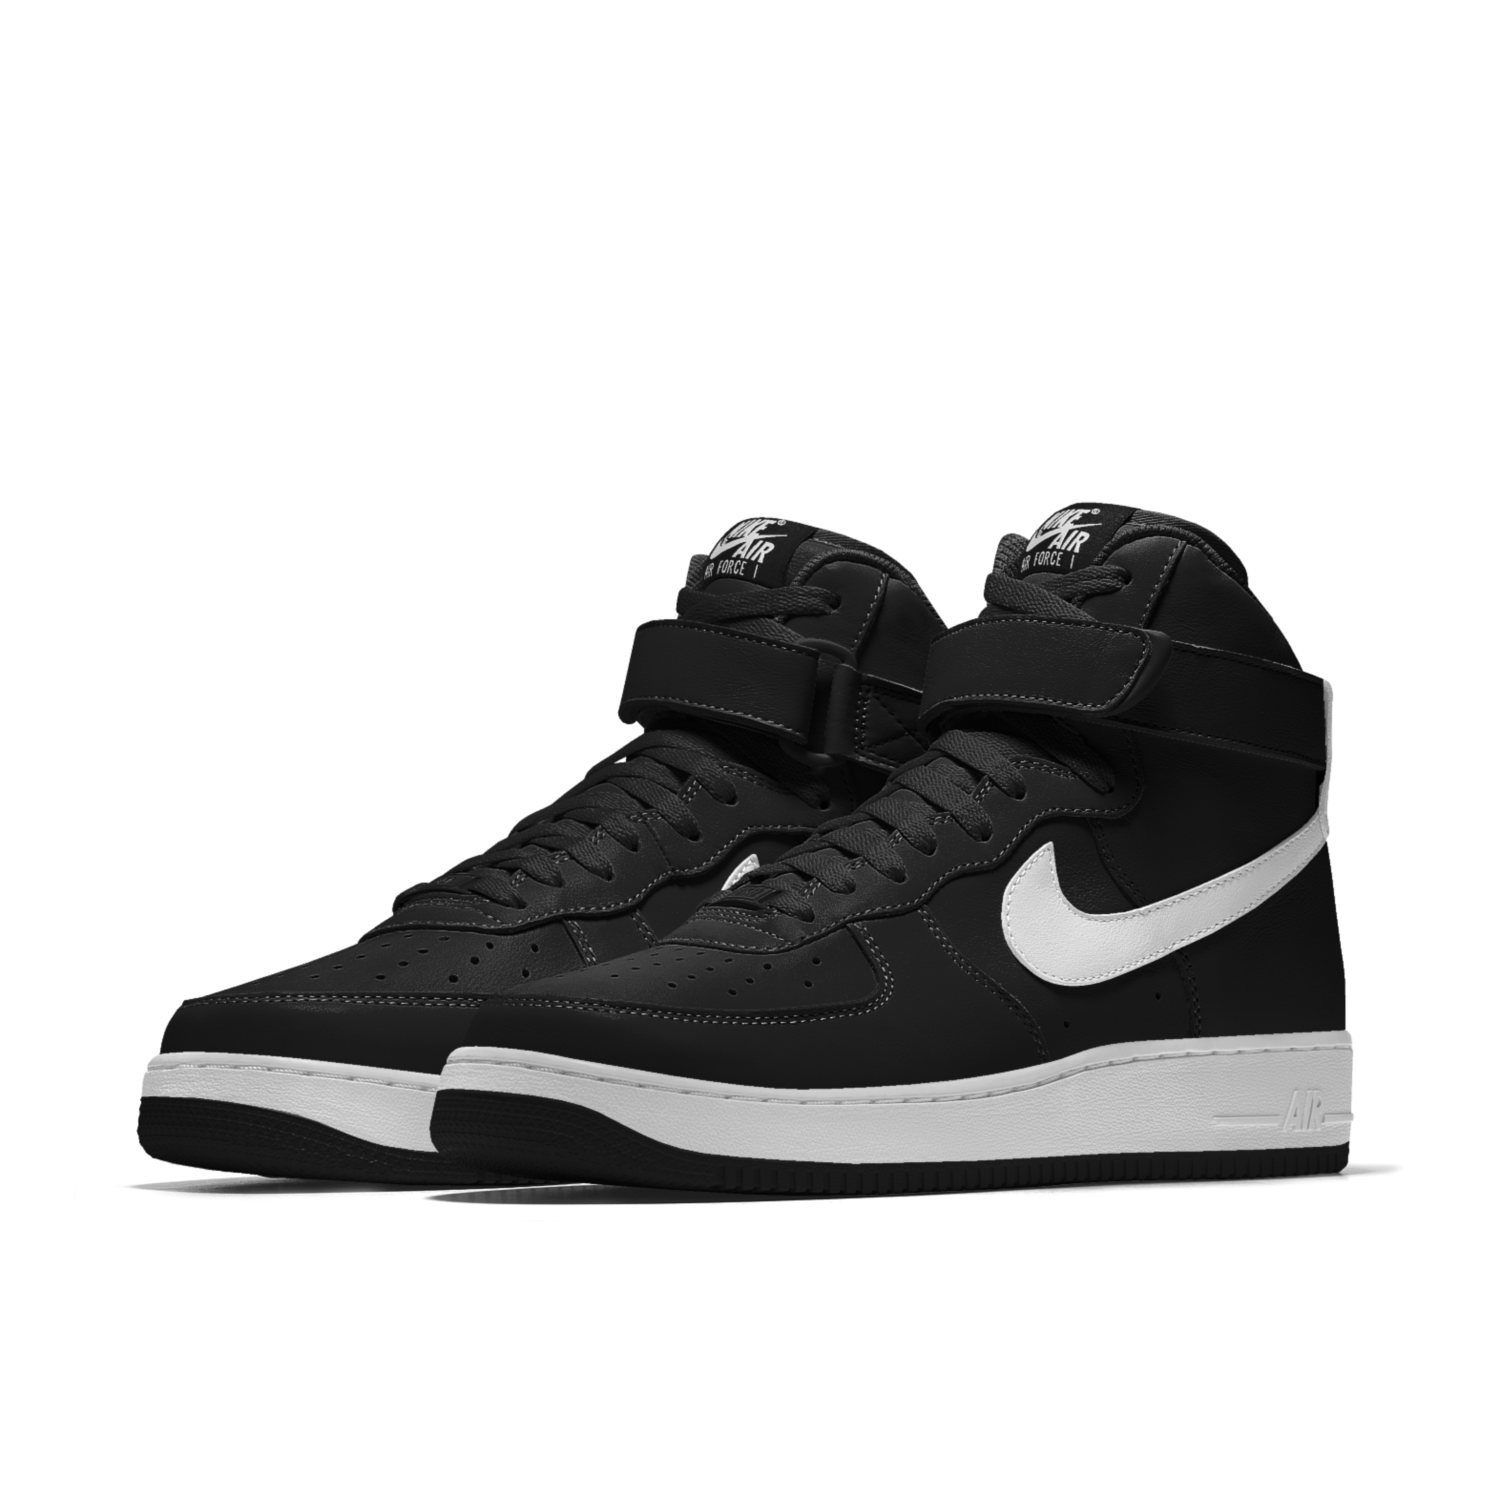 a9c5e2ac55 Nike Air Force 1 High iD Shoe. Nike.com IE | Outfits | Shoes ...